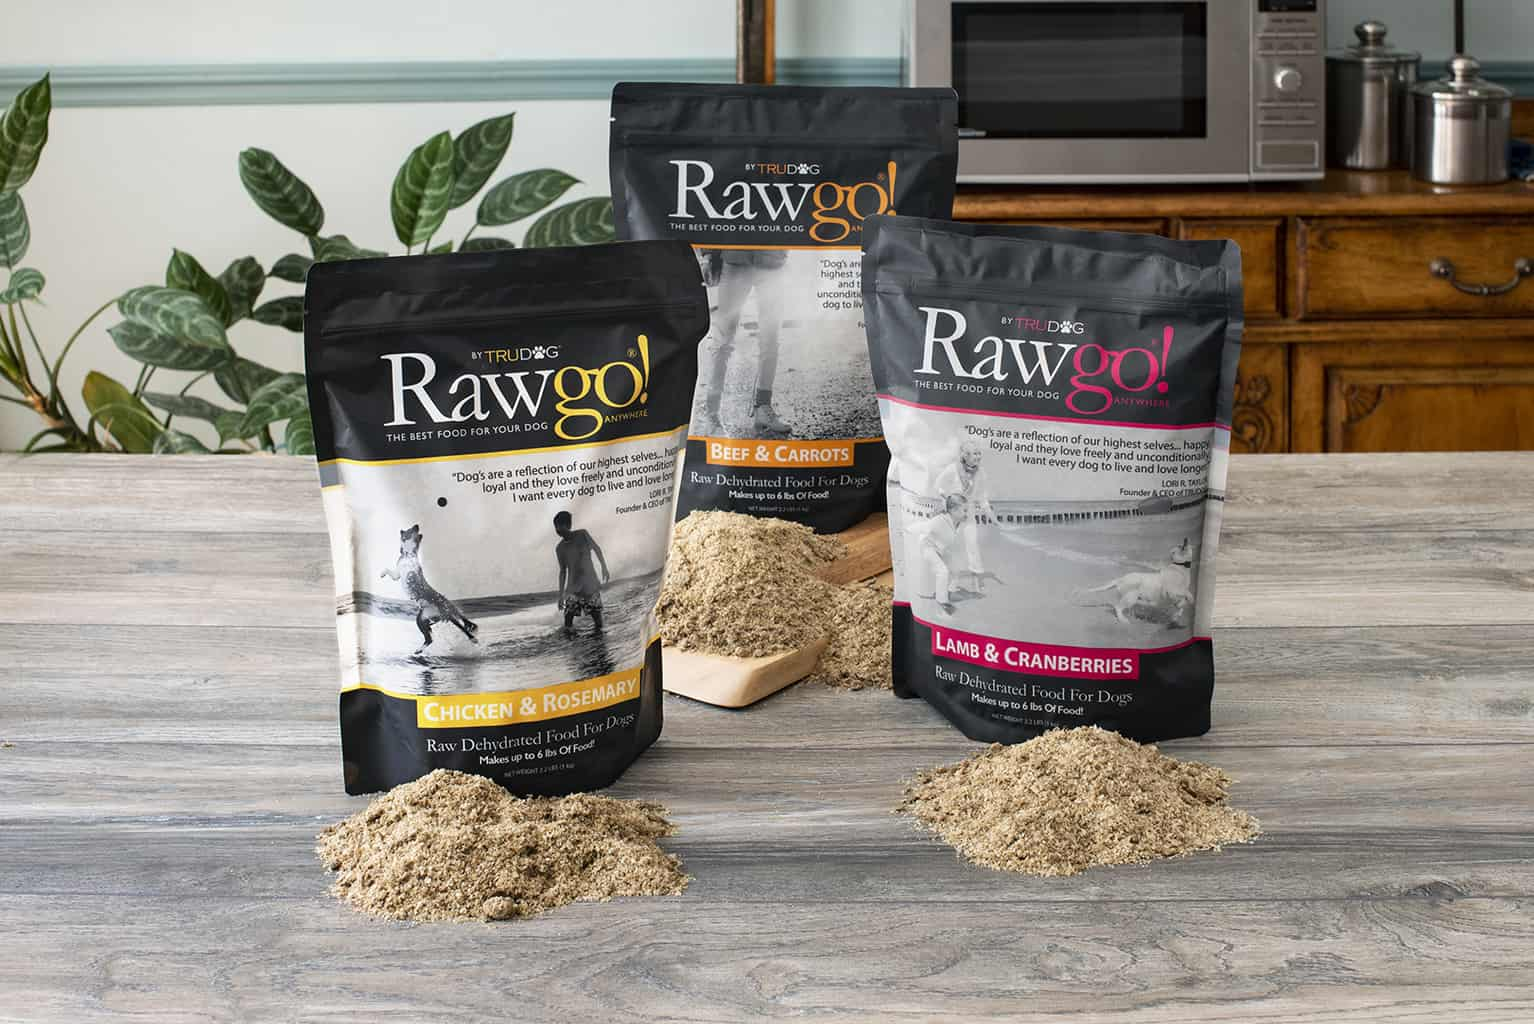 The flavors of Rawgo are beef & carrots, lamb & cranberries, and chicken and rosemary. These 2.2 lb bags make 6 pounds of food, each.